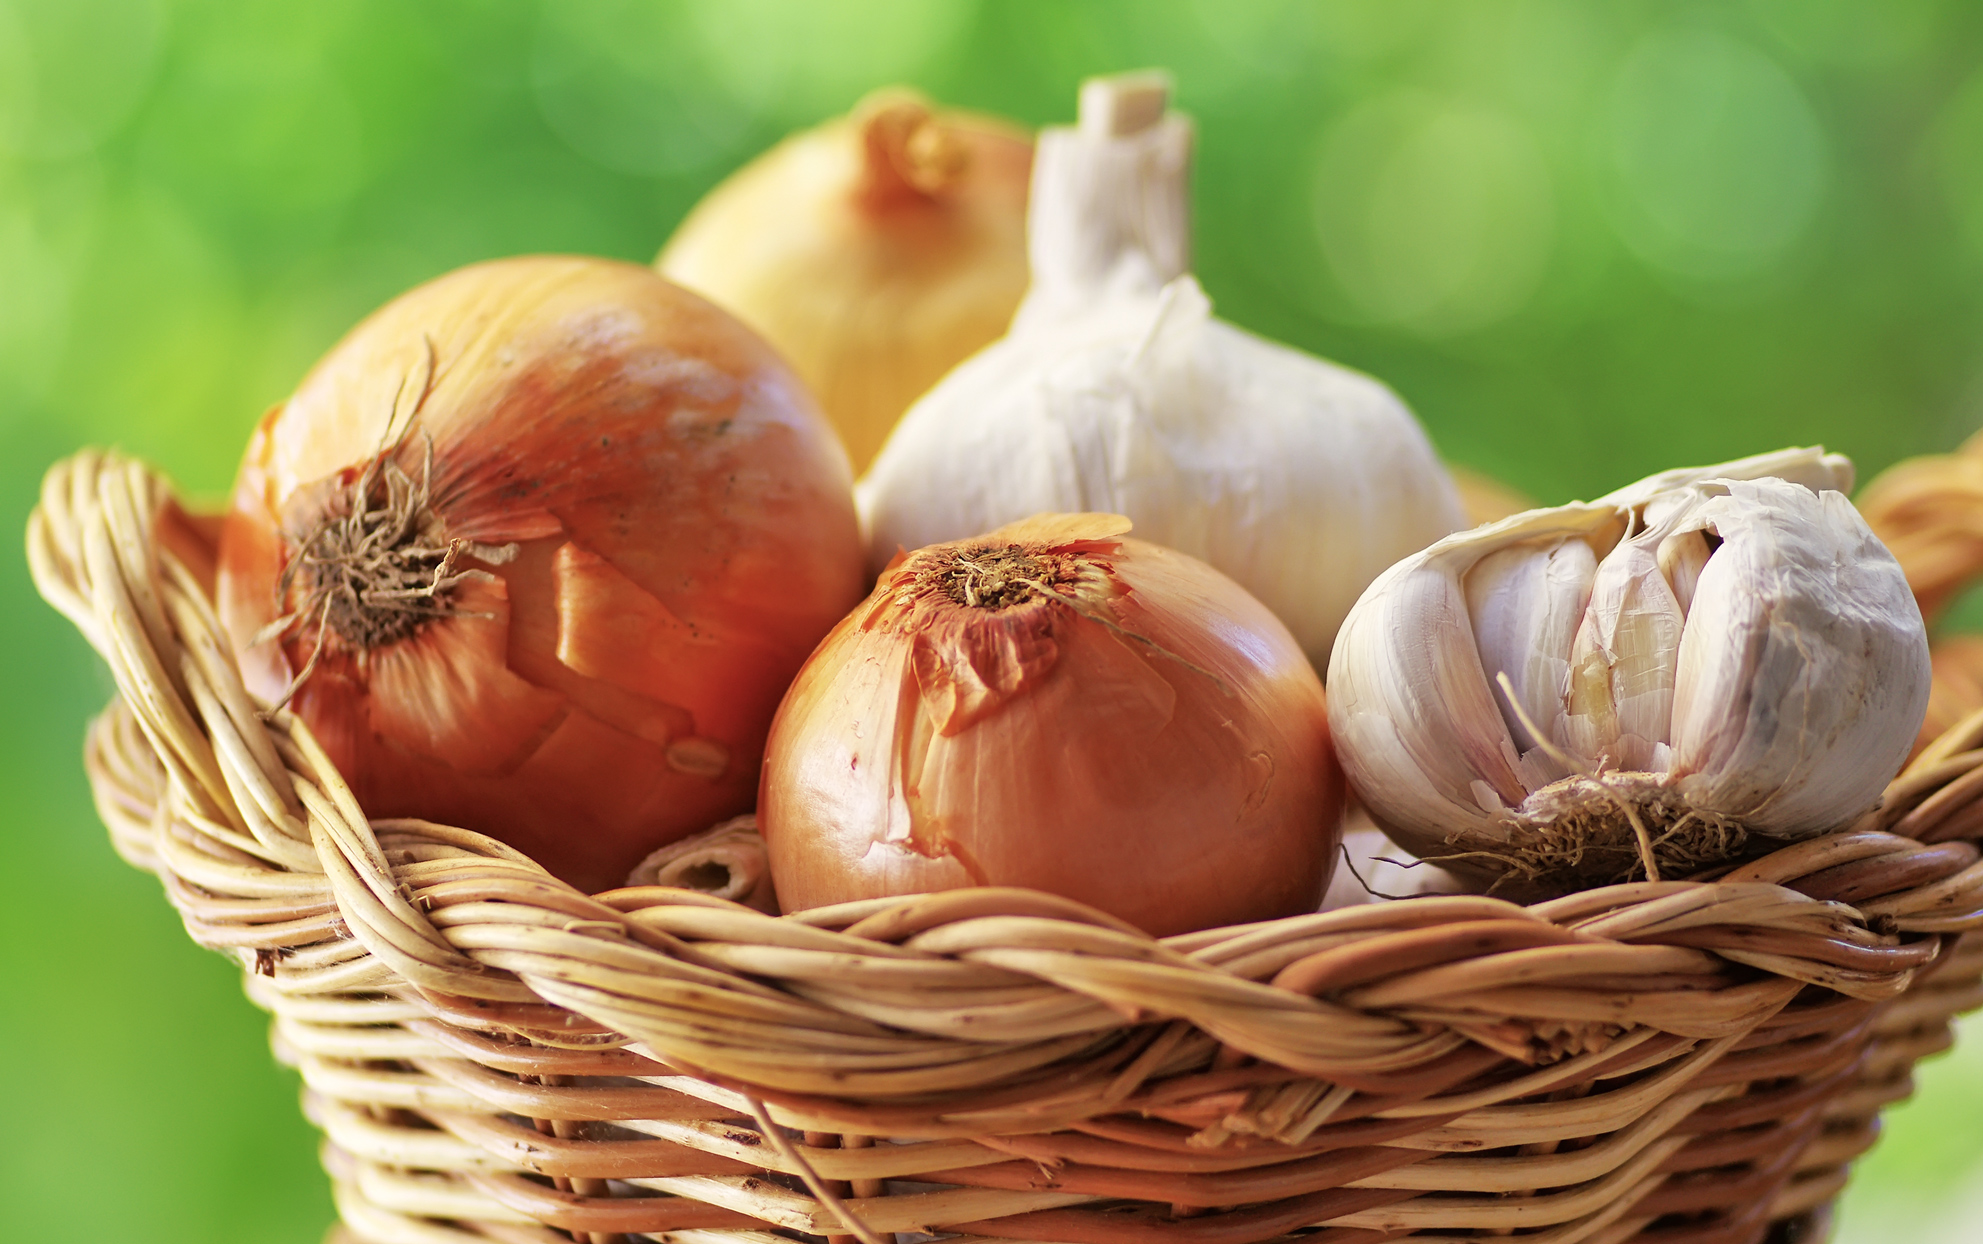 basket of onions and garlic